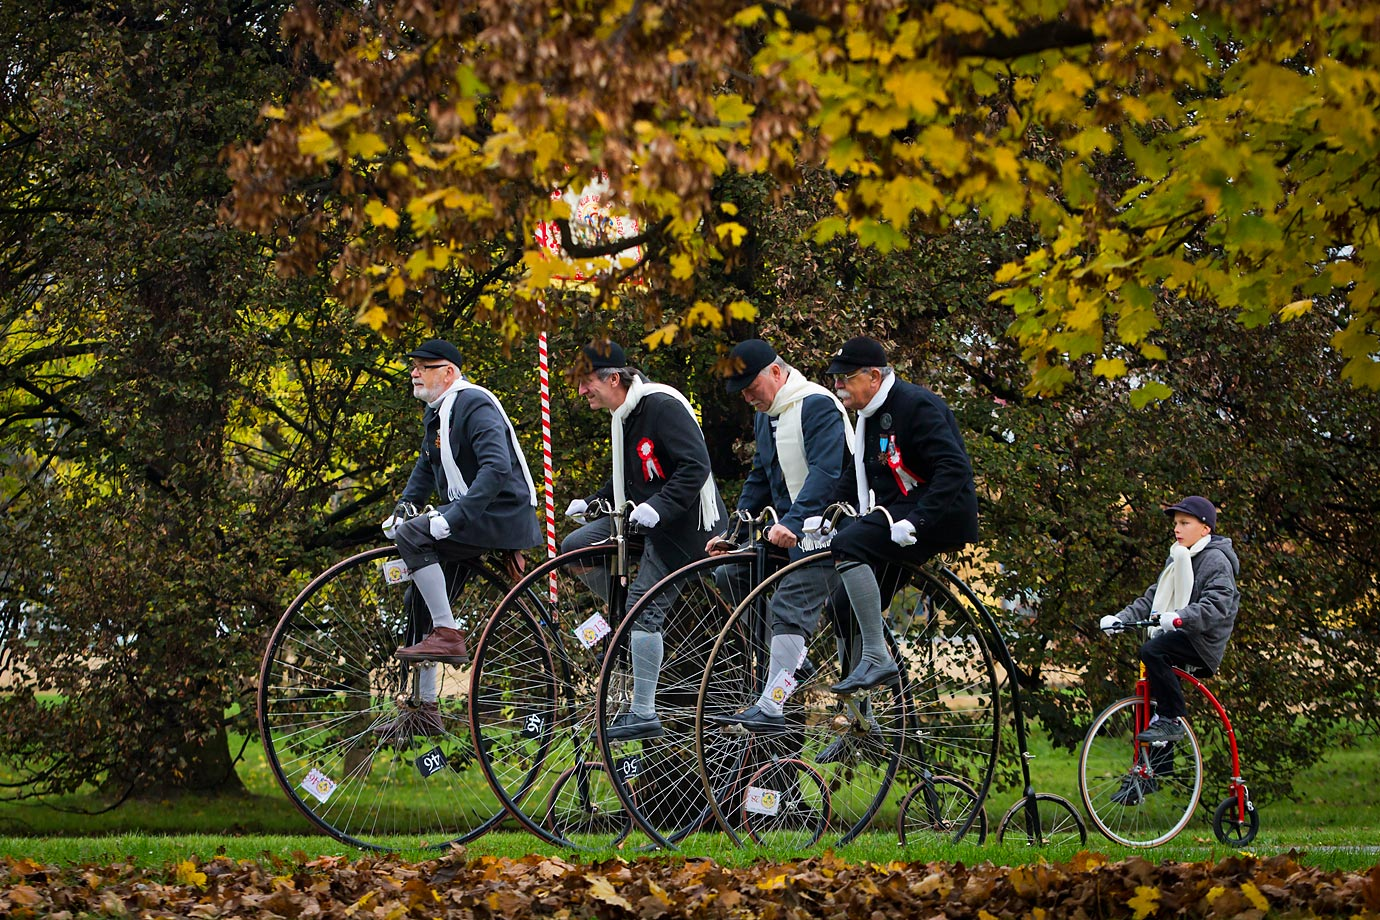 High-wheel bicyclists gather for the Prague Mile. The Czech high-wheel bicycles club was founded in 1880 and its members meet up at this race yearly.